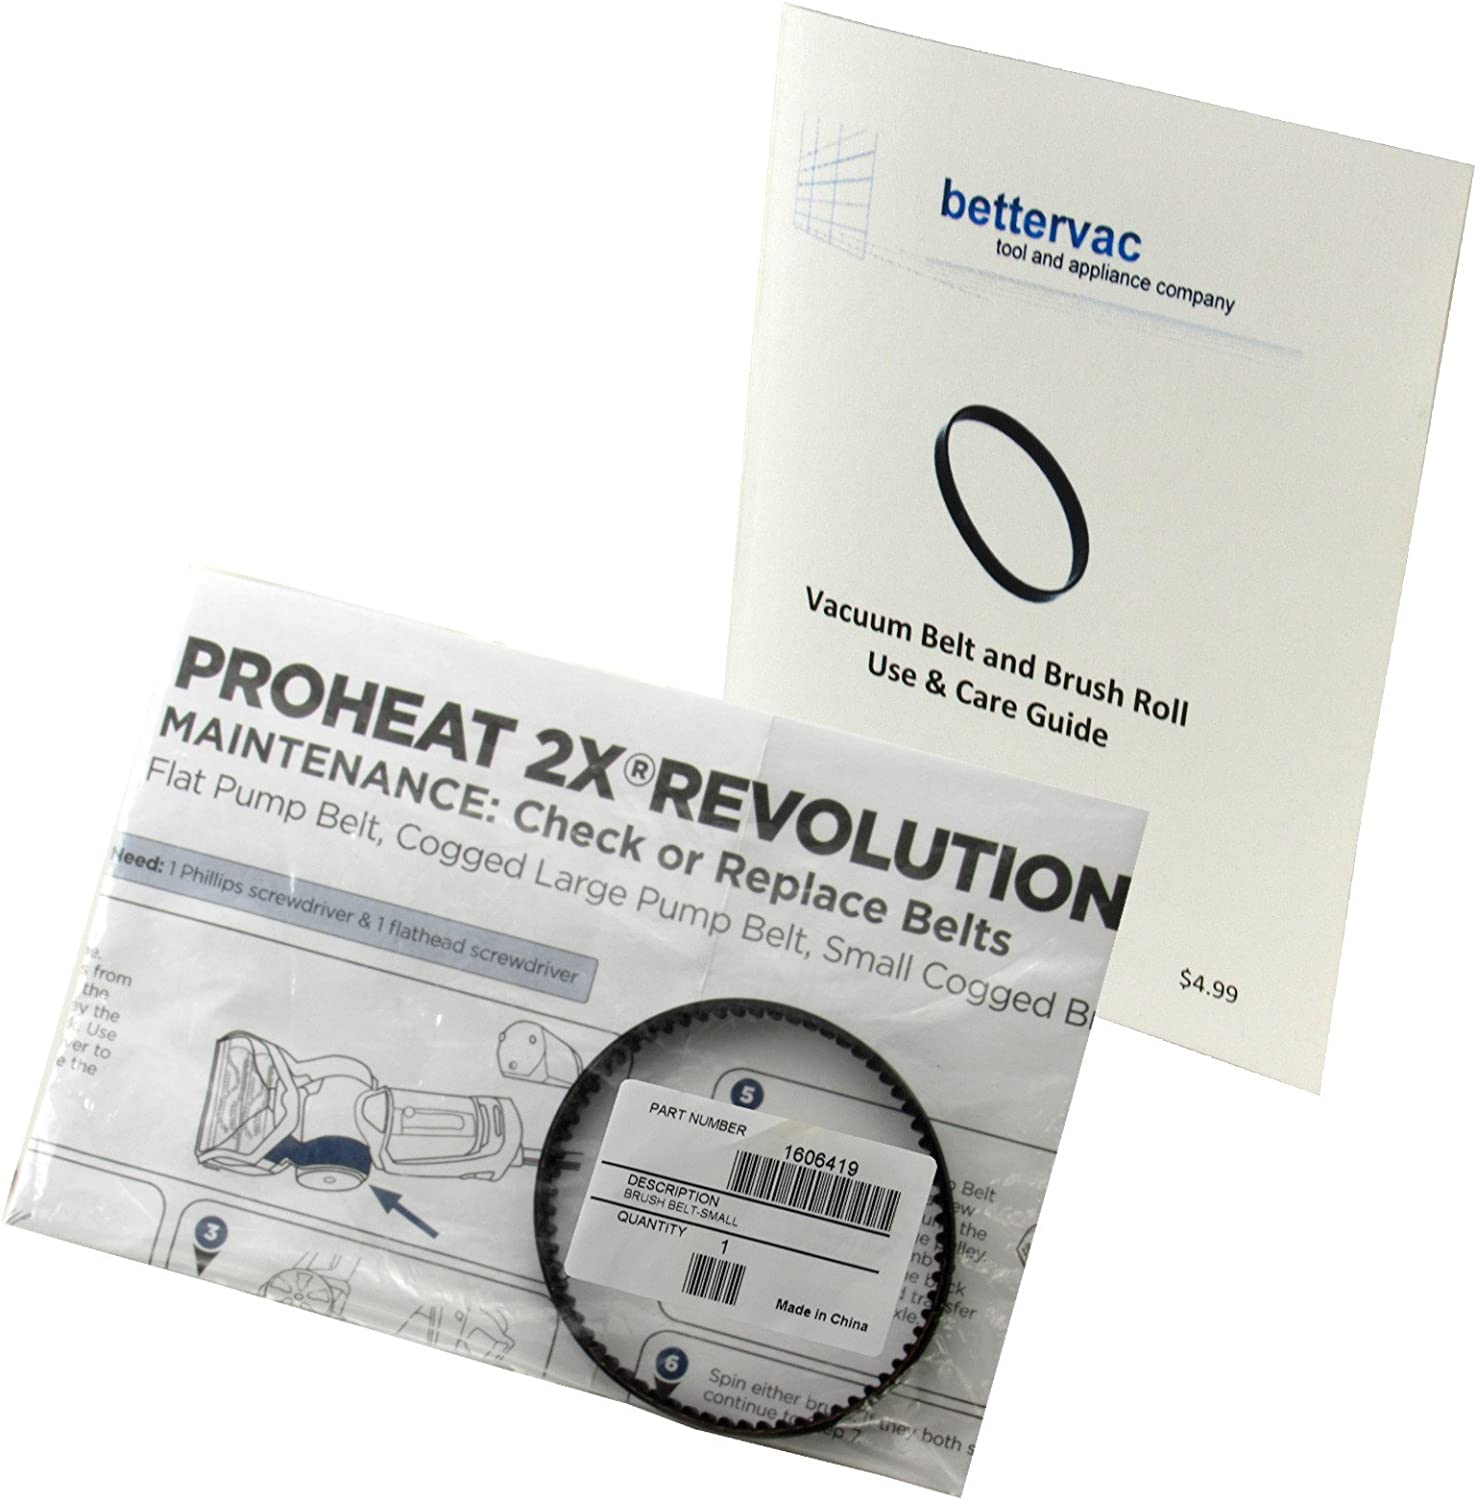 Bissell Proheat 2X Revolution & 2X Revolution Pet Deluxe Belt #1606419 Bundled With Use And Care Guide